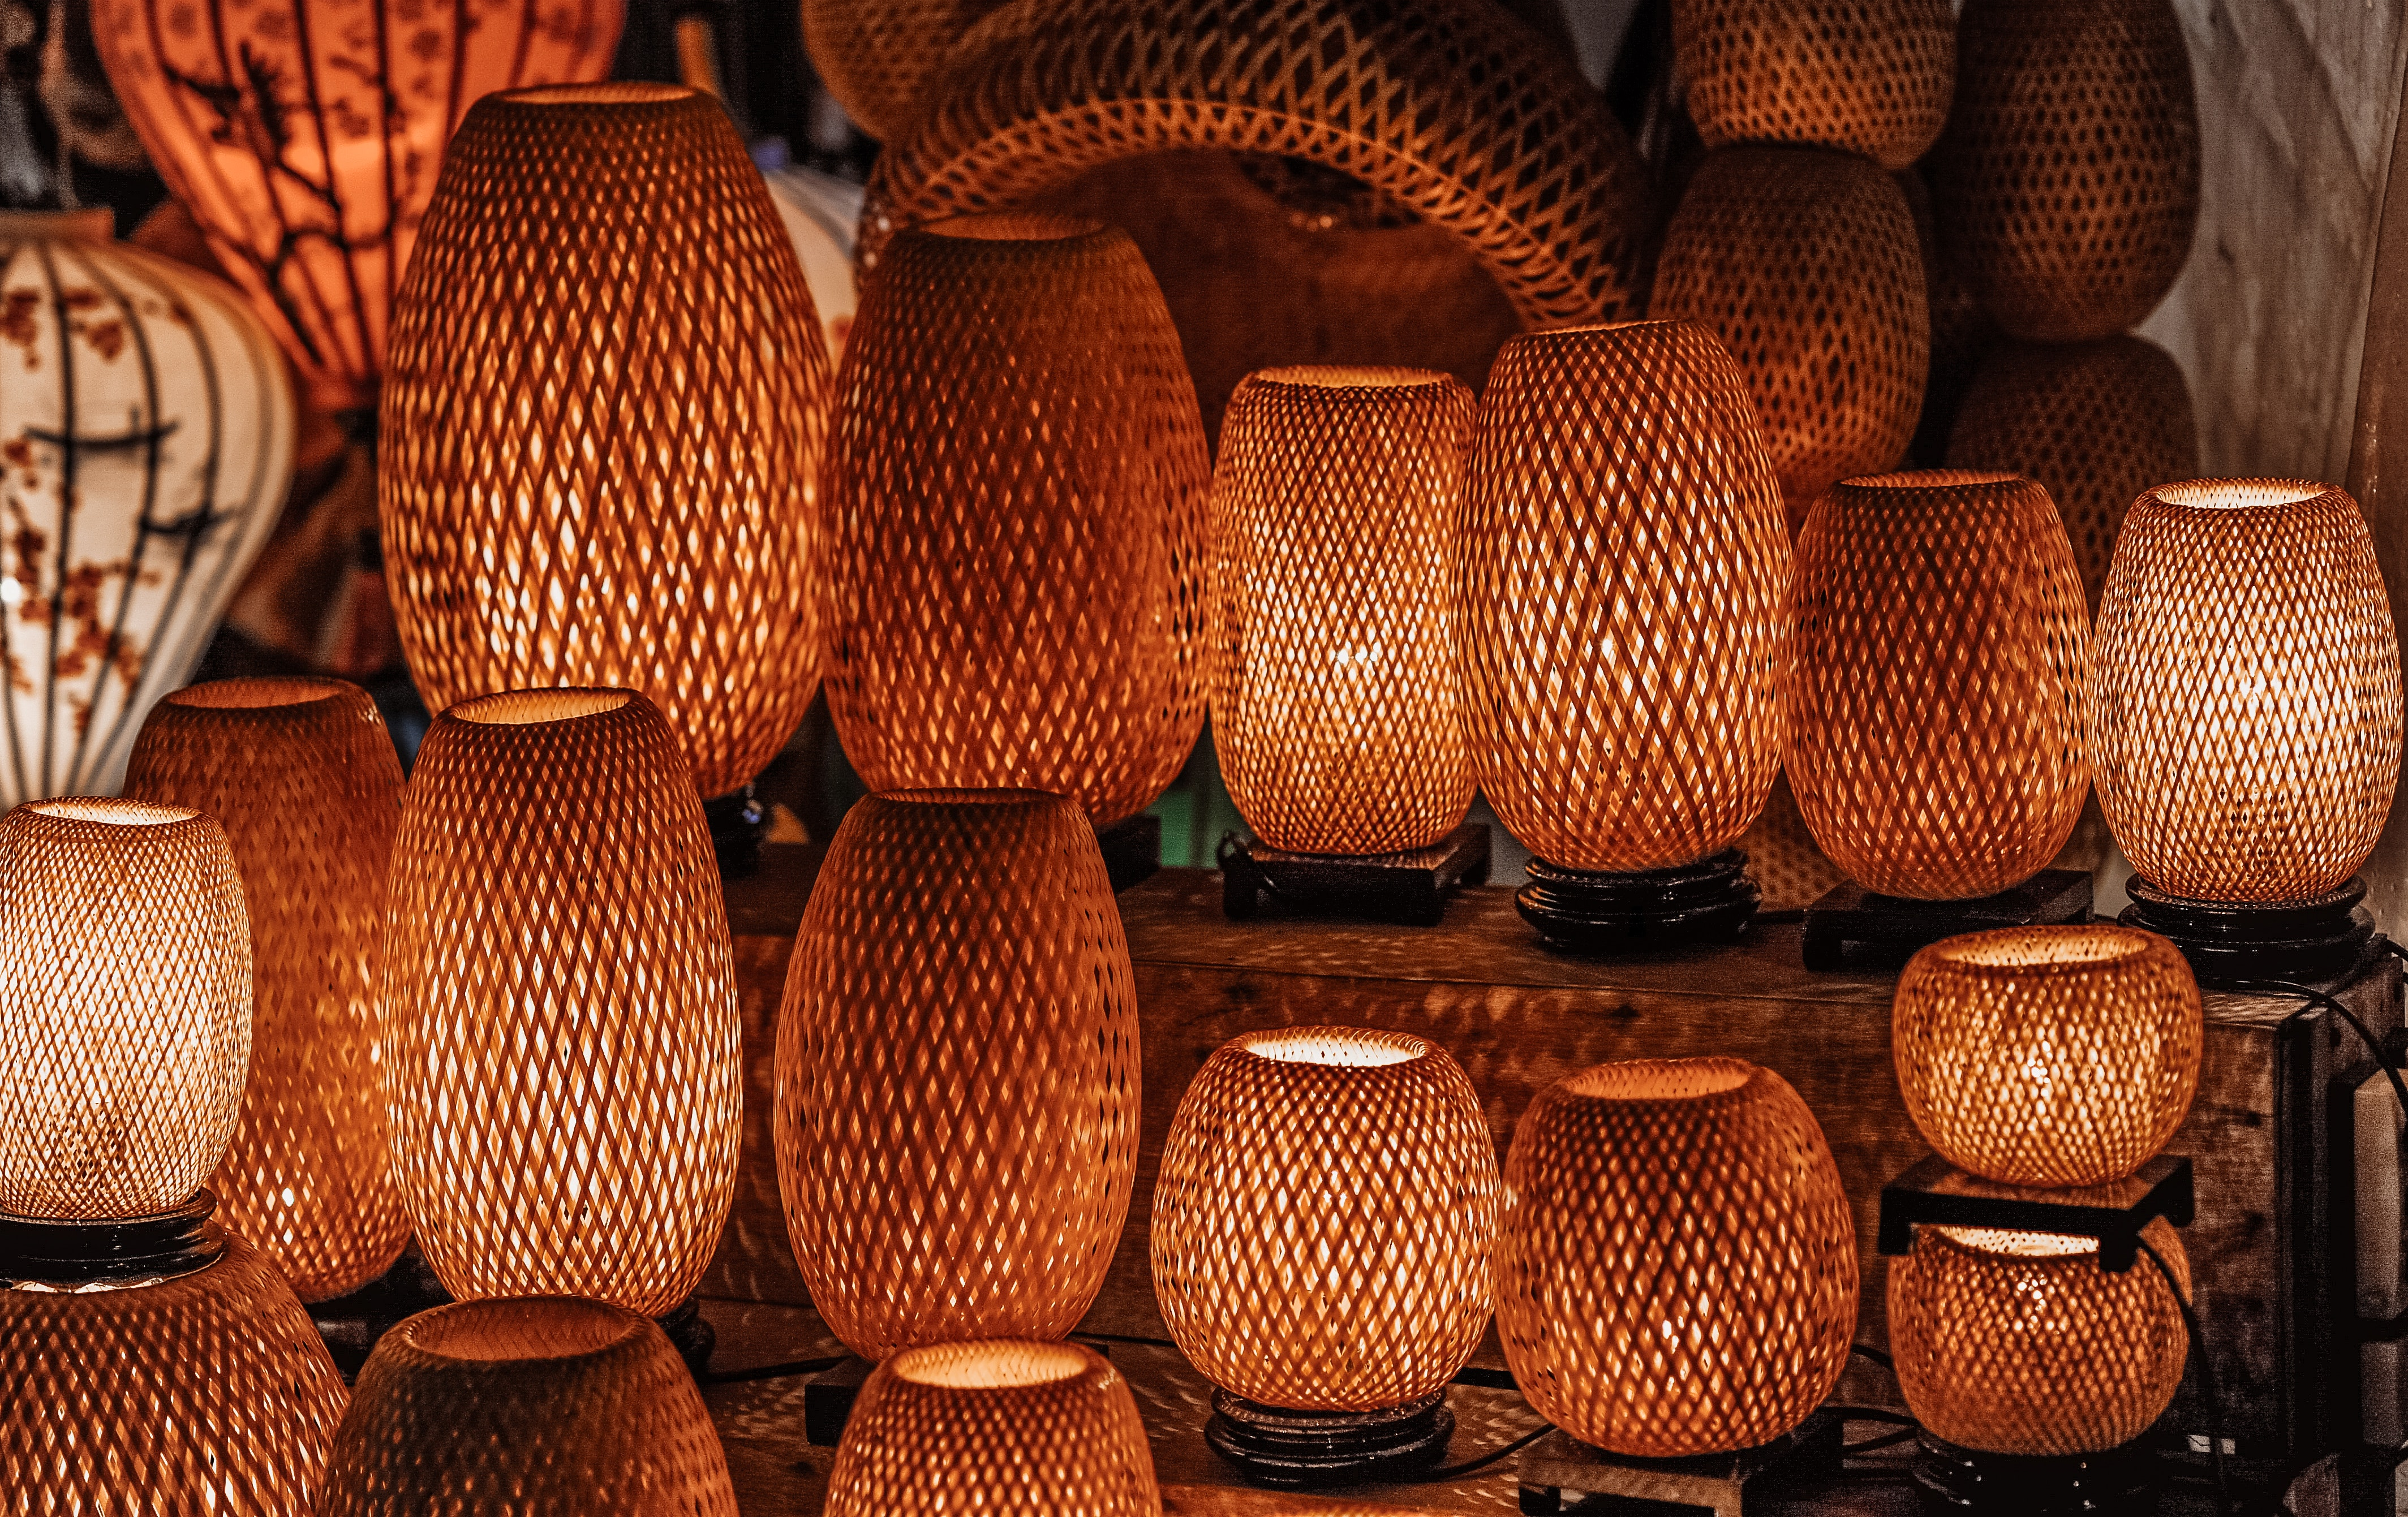 Red Table Lamps, Art, Lamps, Wood, Traditional, HQ Photo